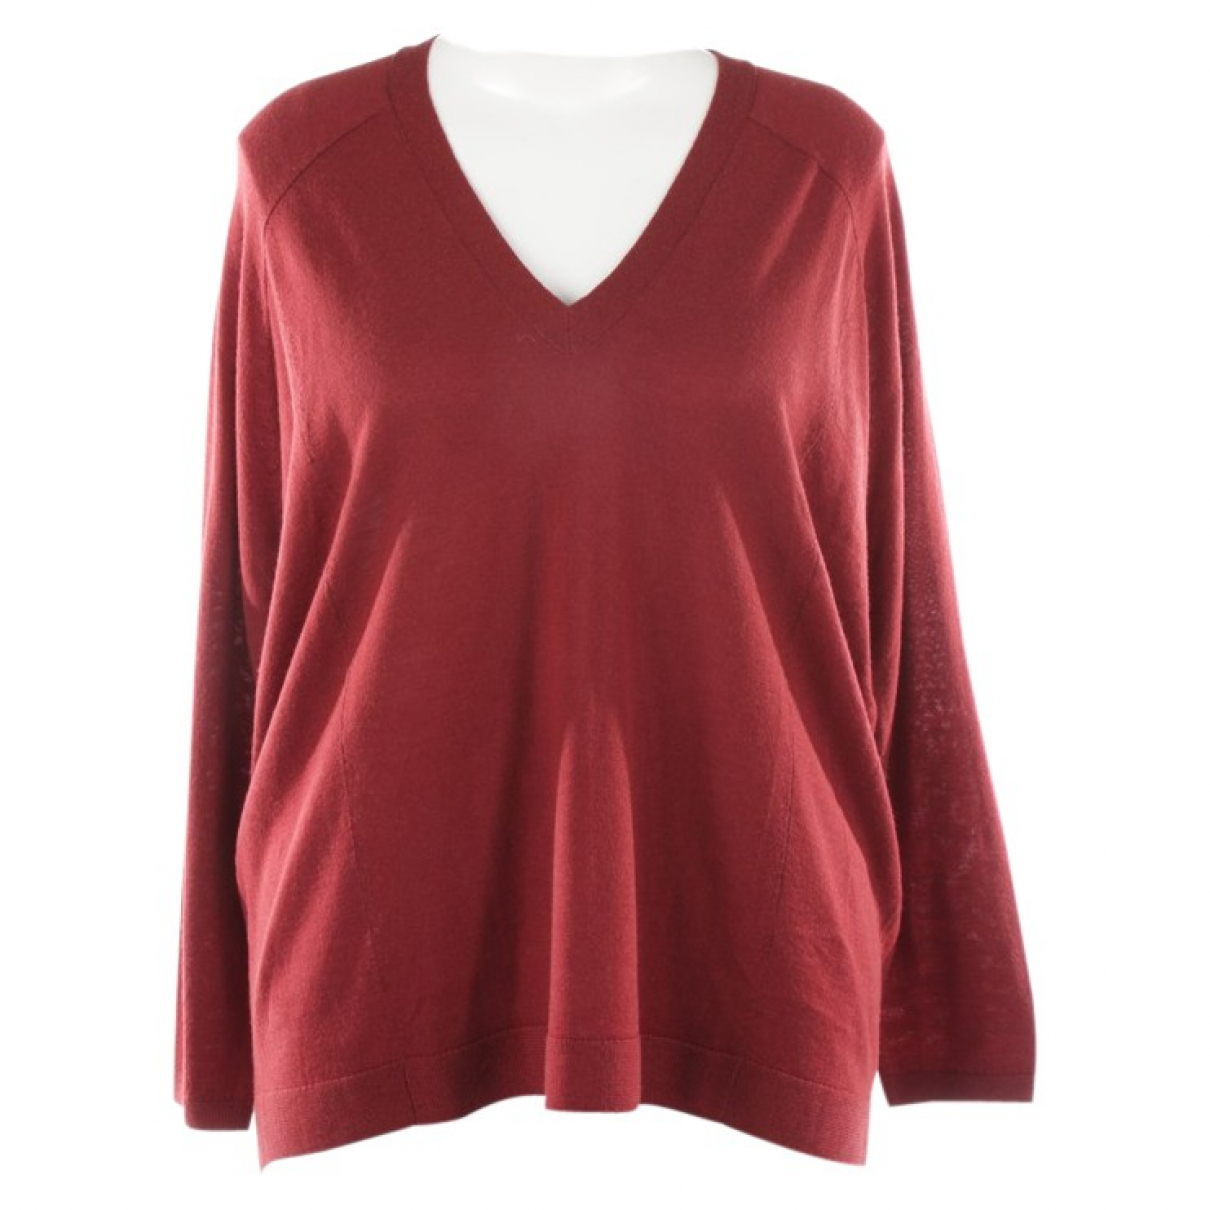 Autre Marque \N Red Knitwear for Women 44 FR